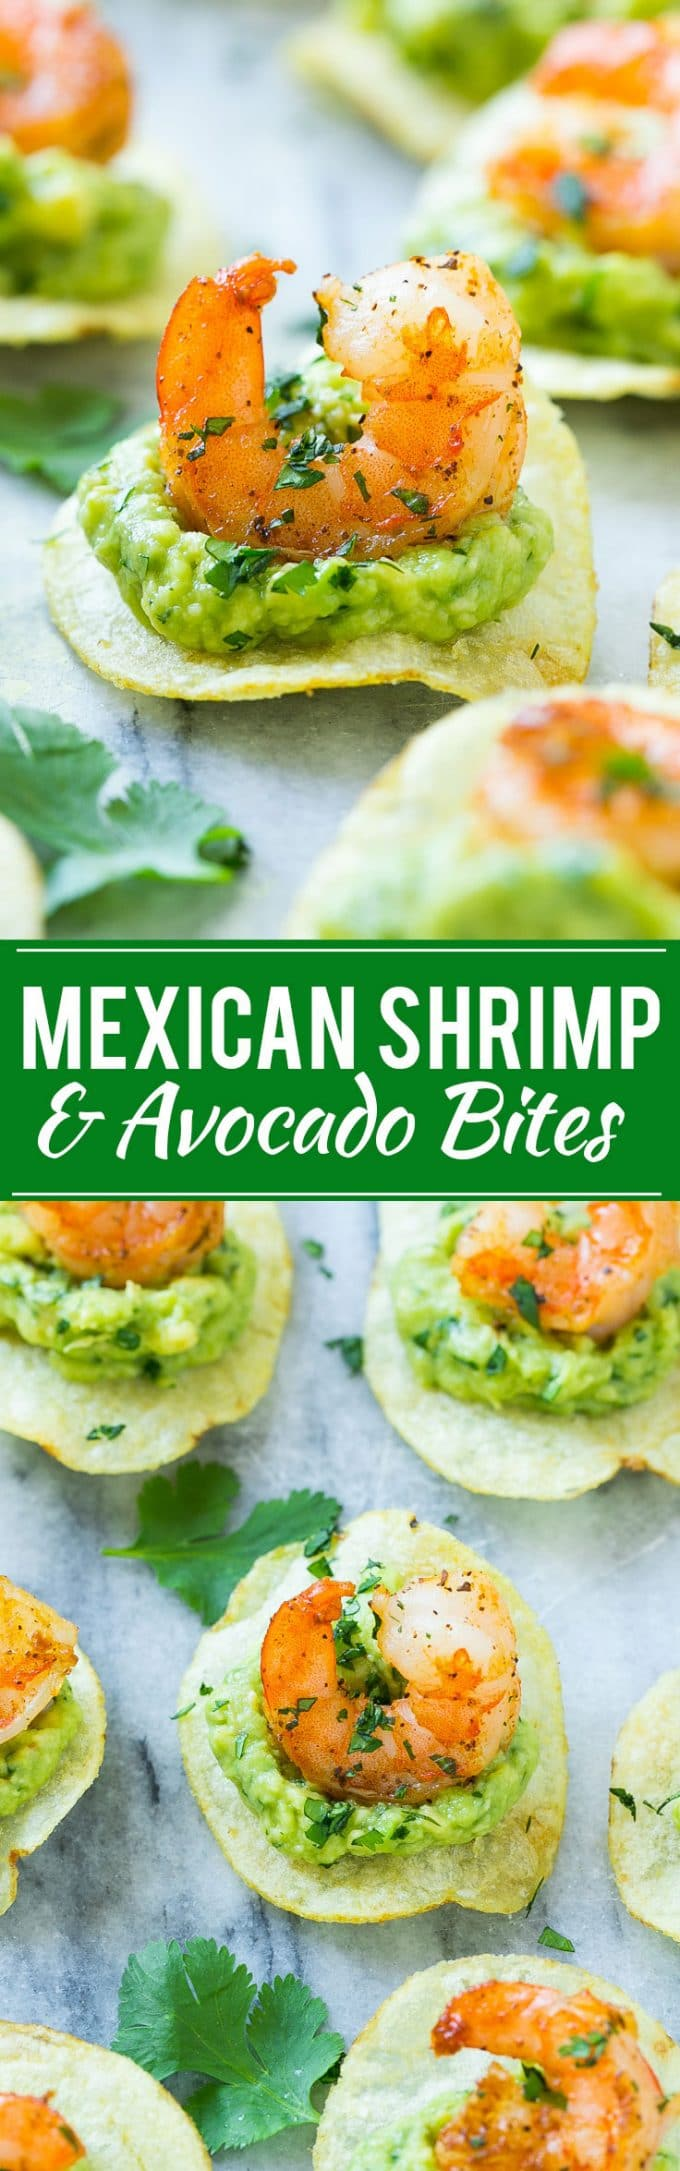 Mexican Shrimp Bites | Shrimp and Avocado Bites | Shrimp Appetizer #shrimp #avocado #appetizer #dinneratthezoo